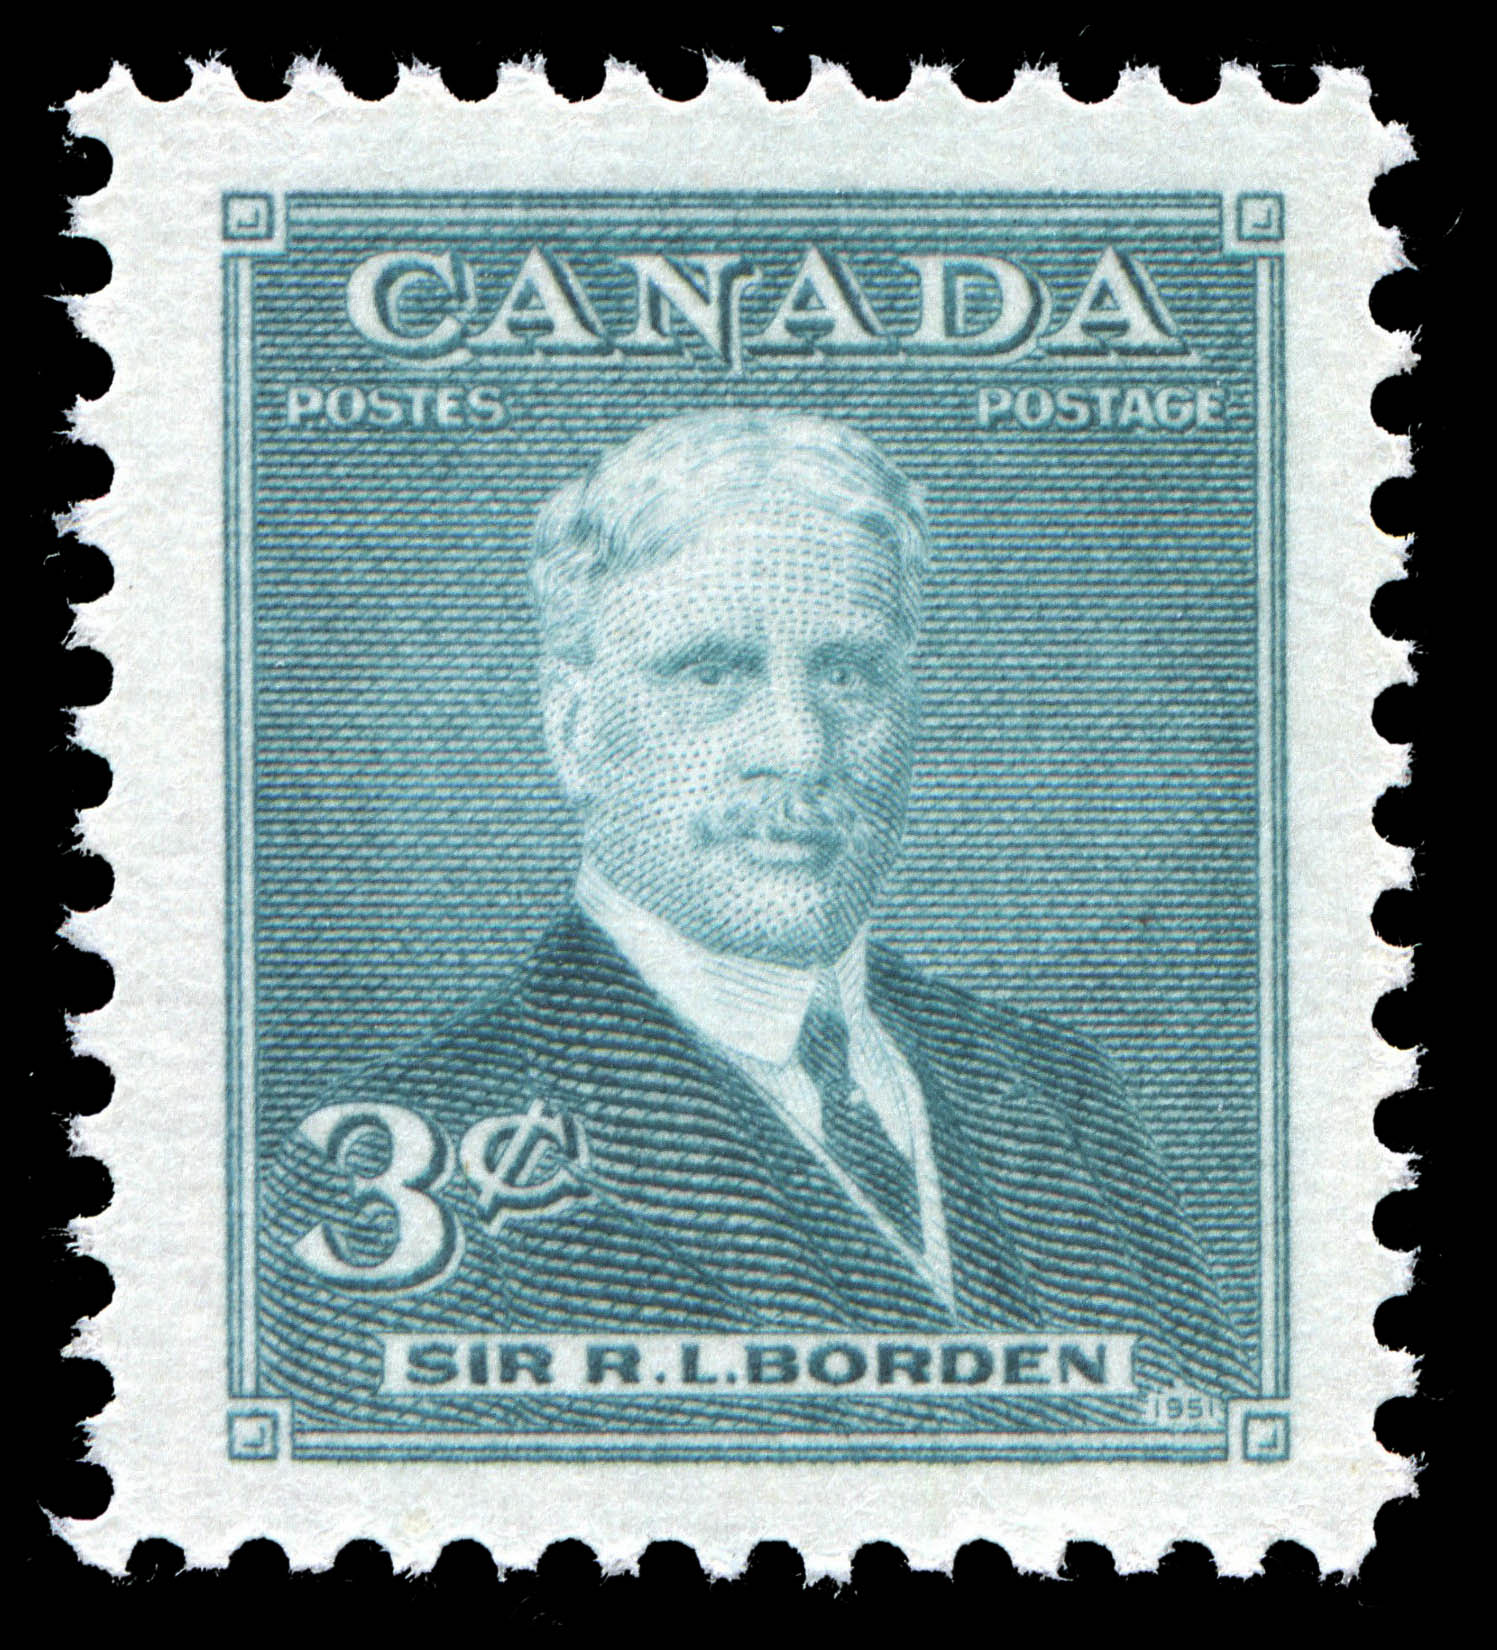 Sir R.L. Borden Canada Postage Stamp